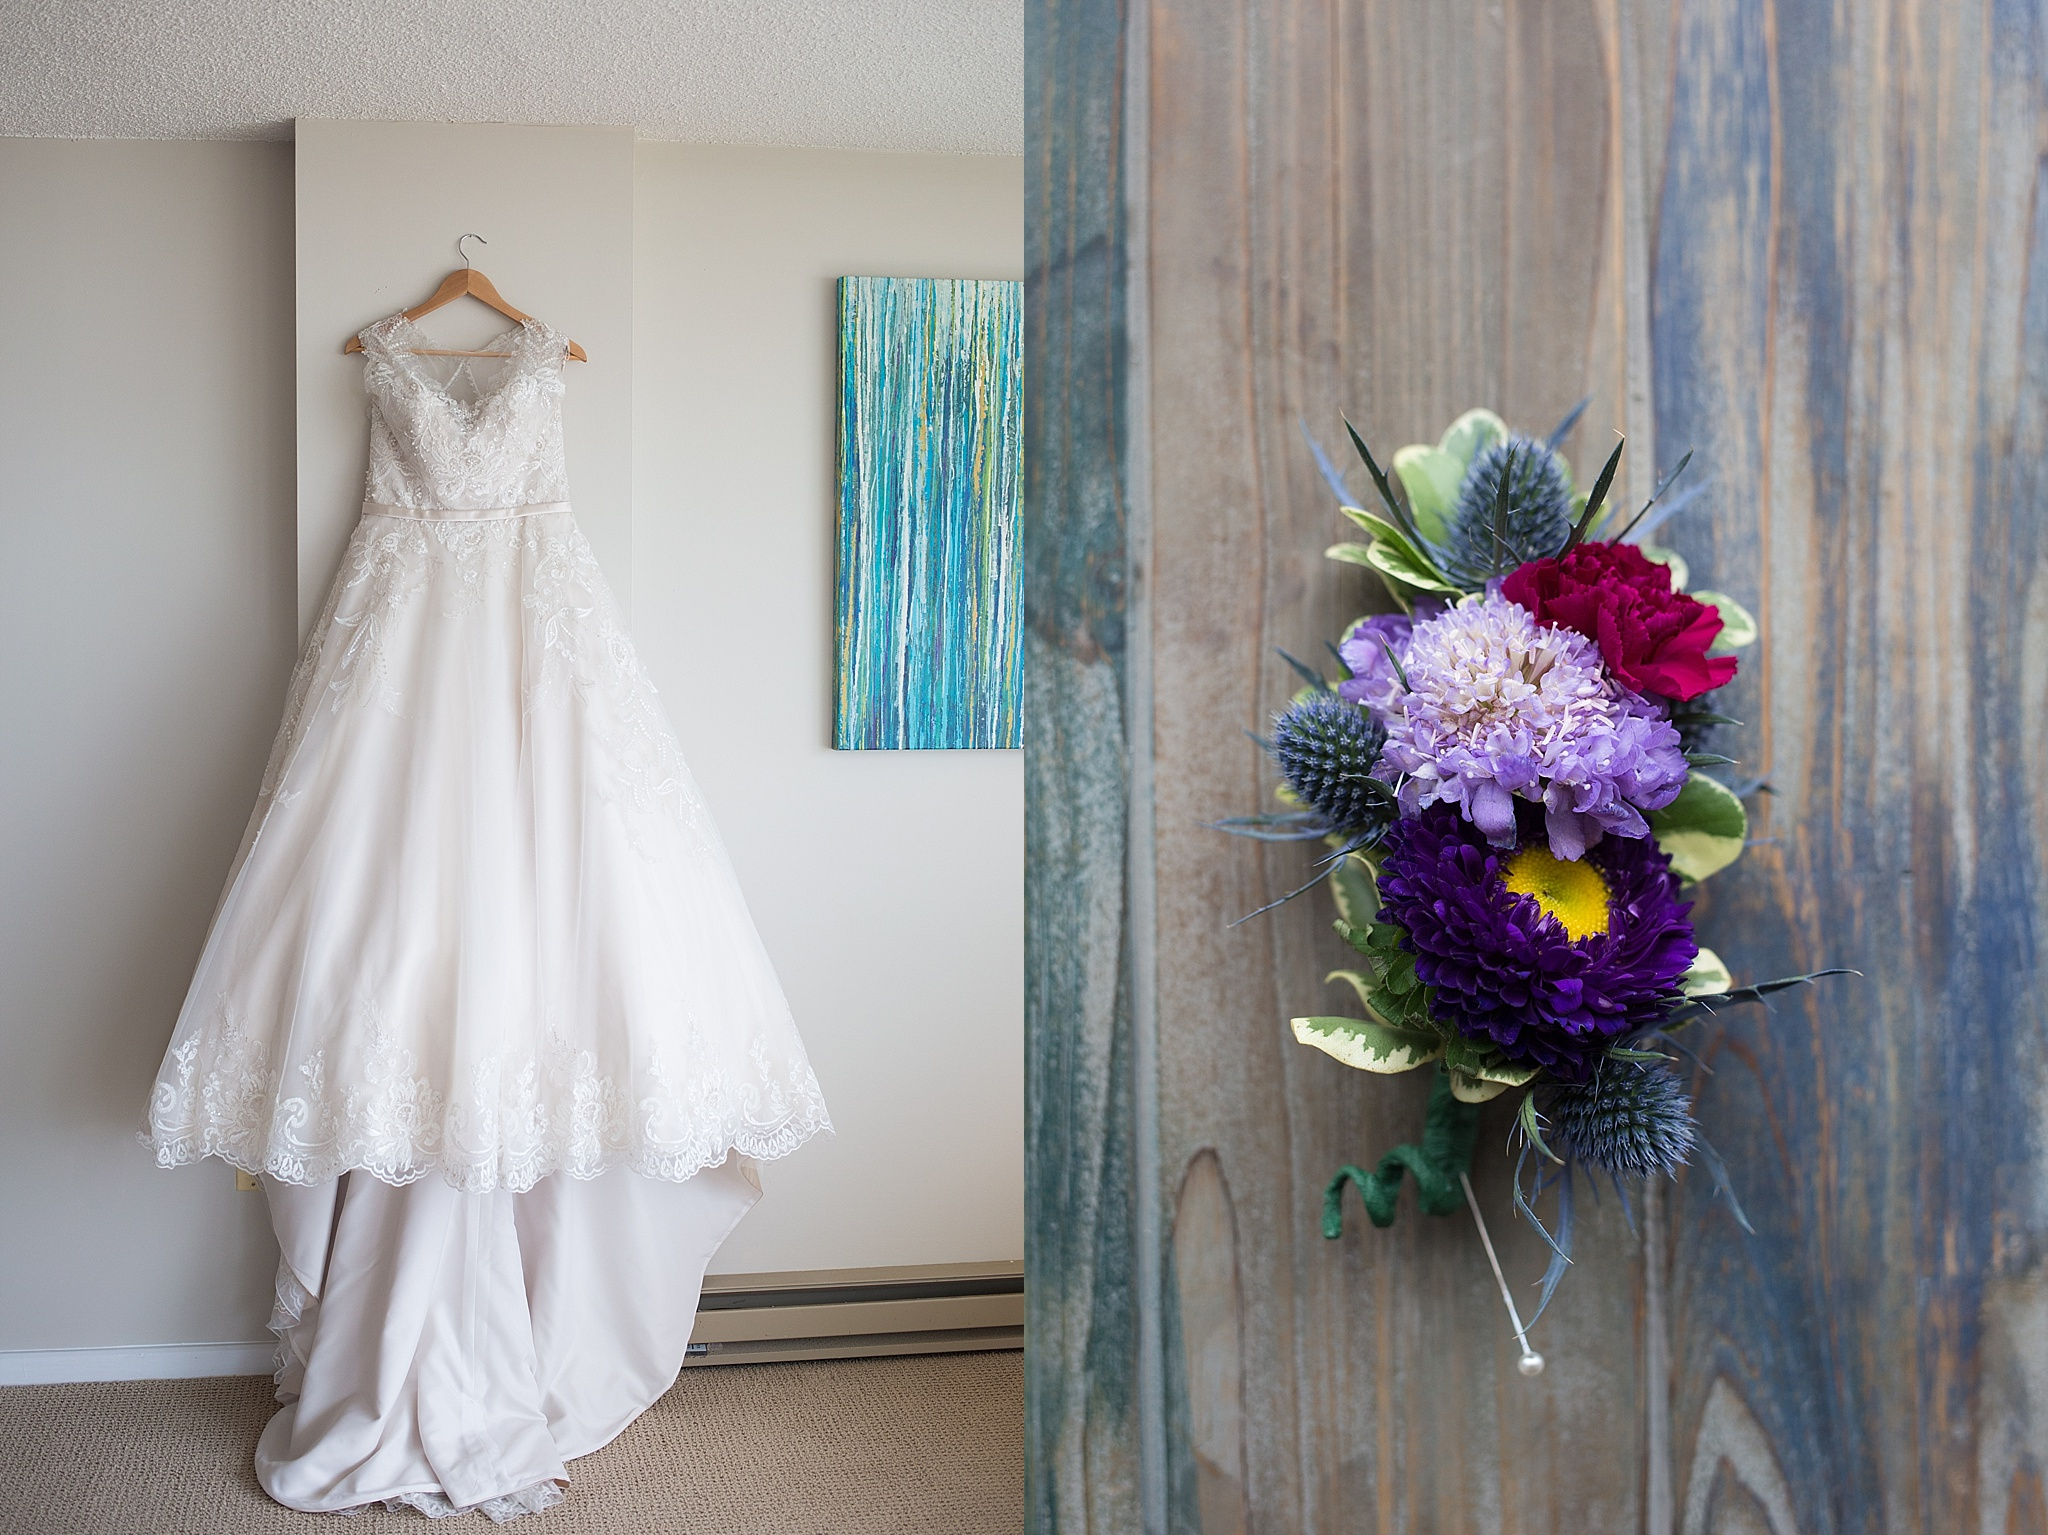 Bridal gown and flowers